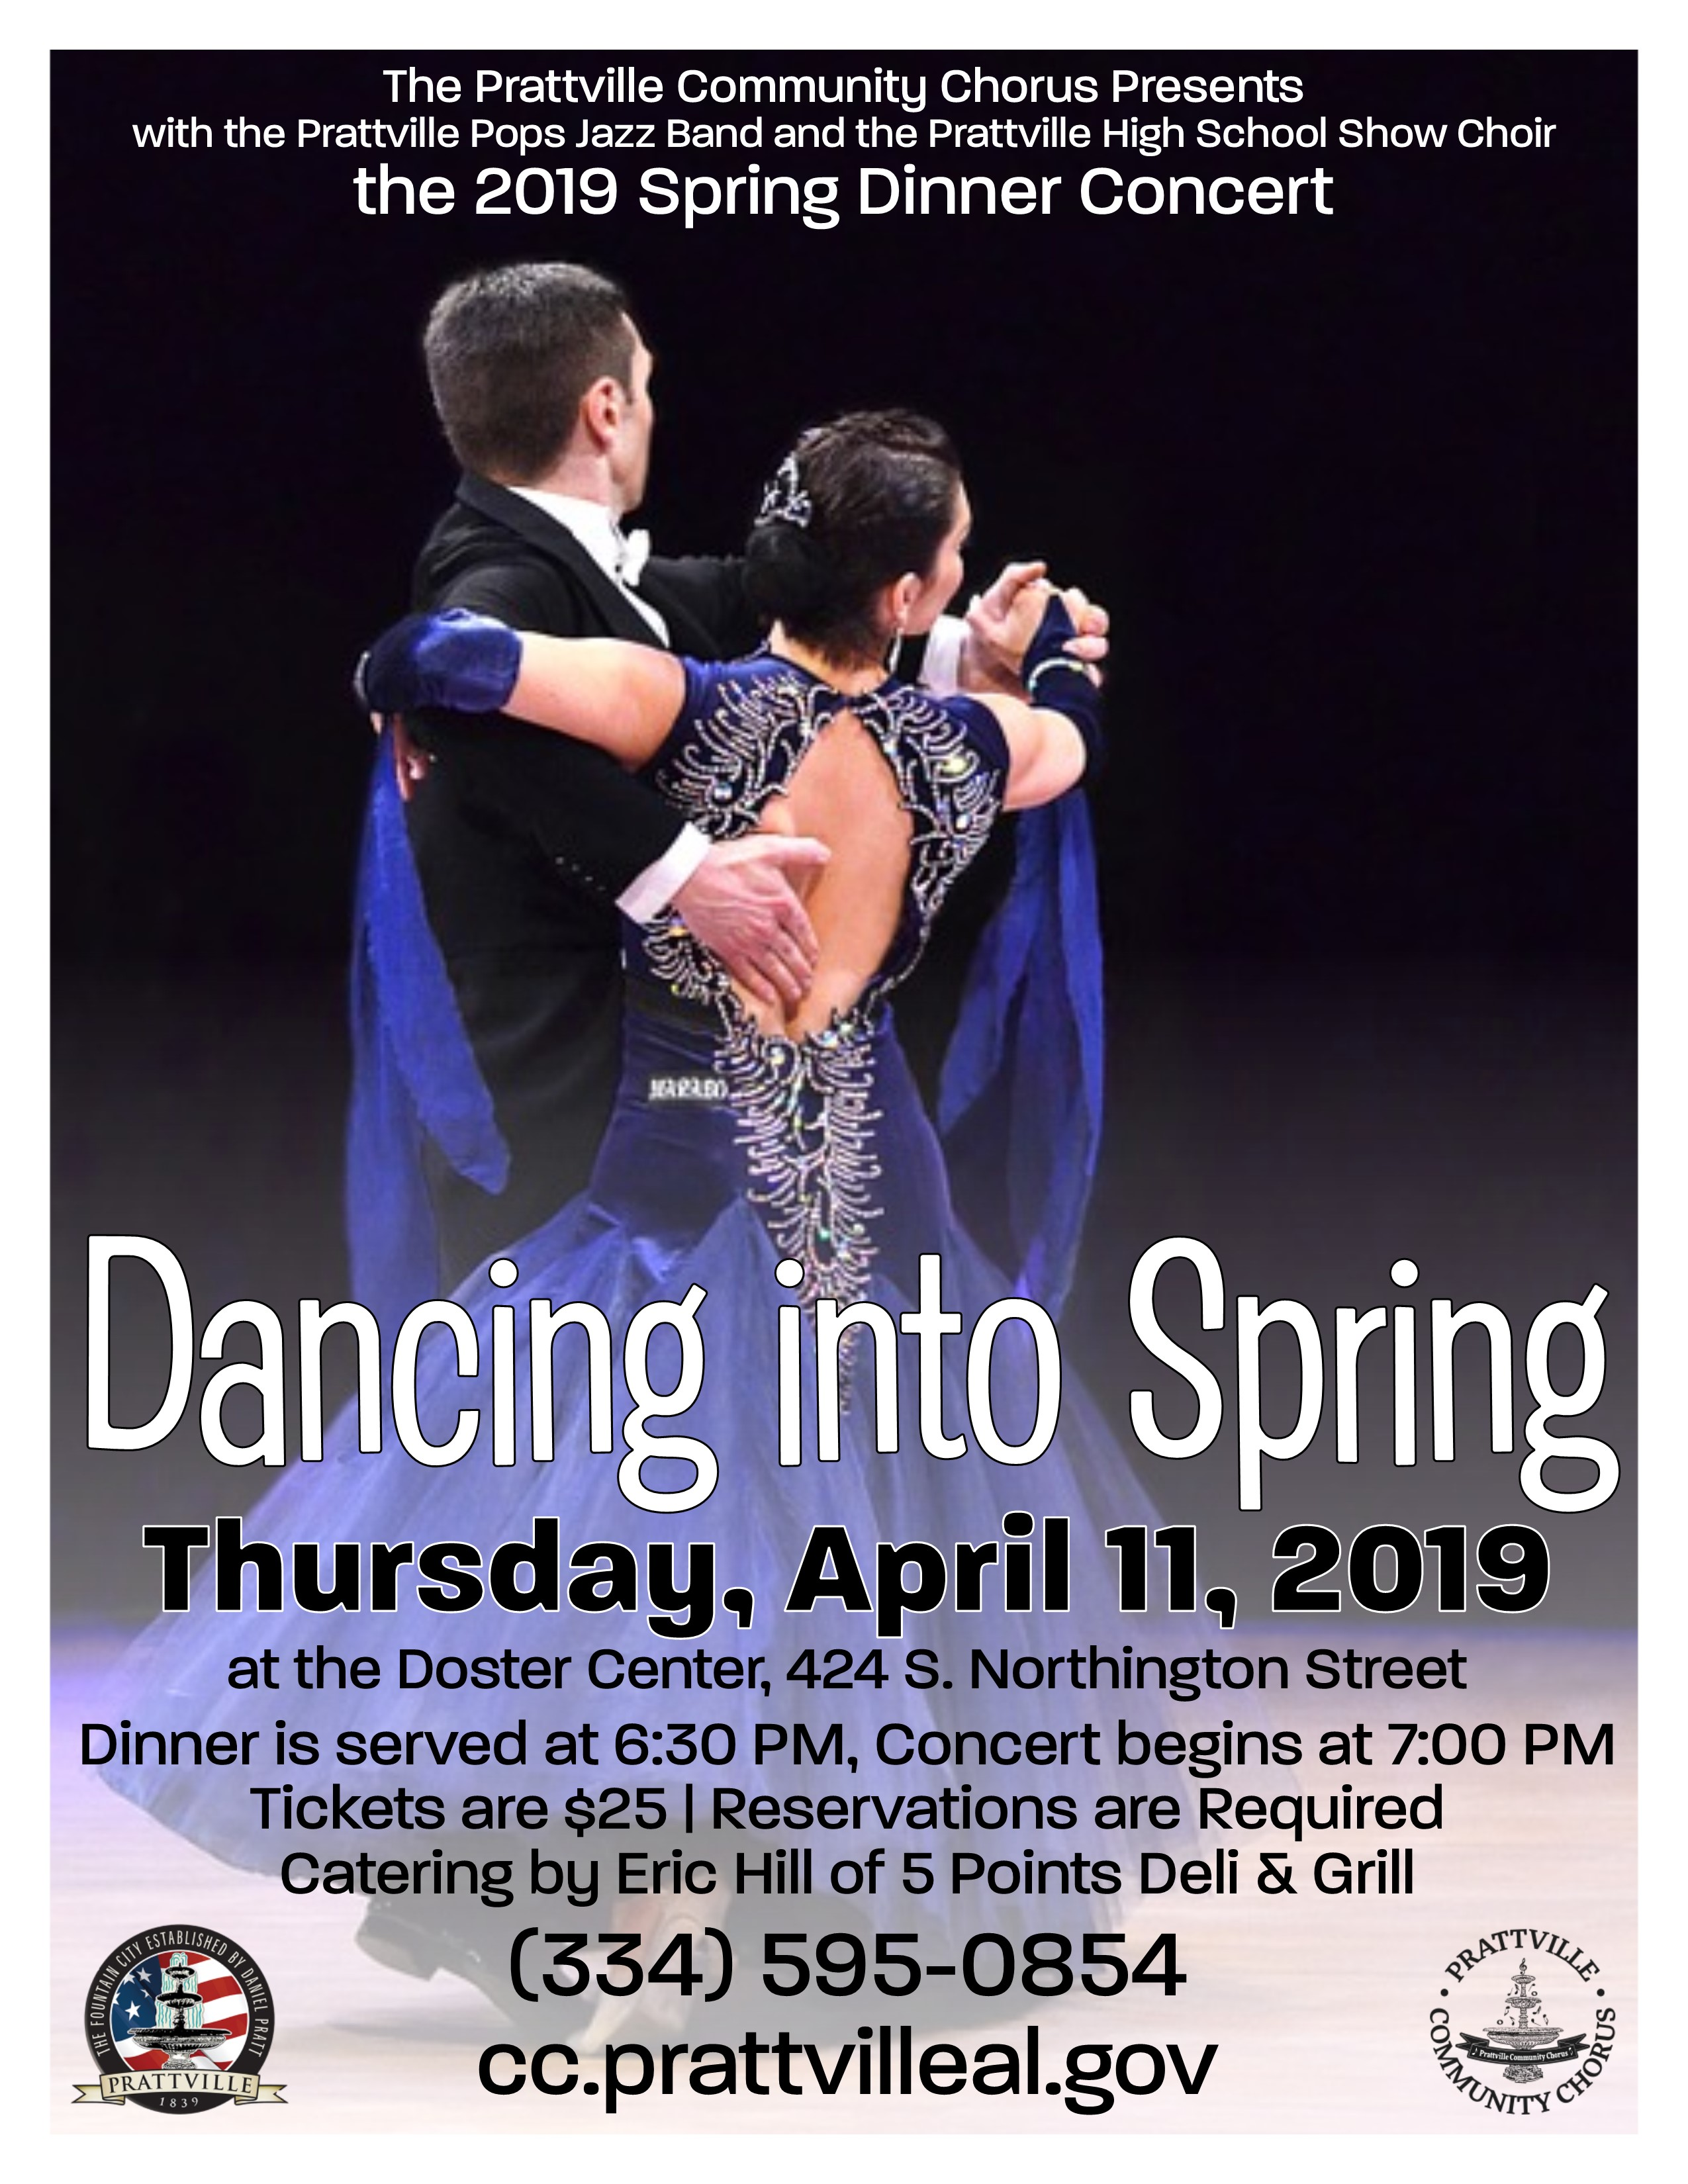 Dancing into Spring Flyer1